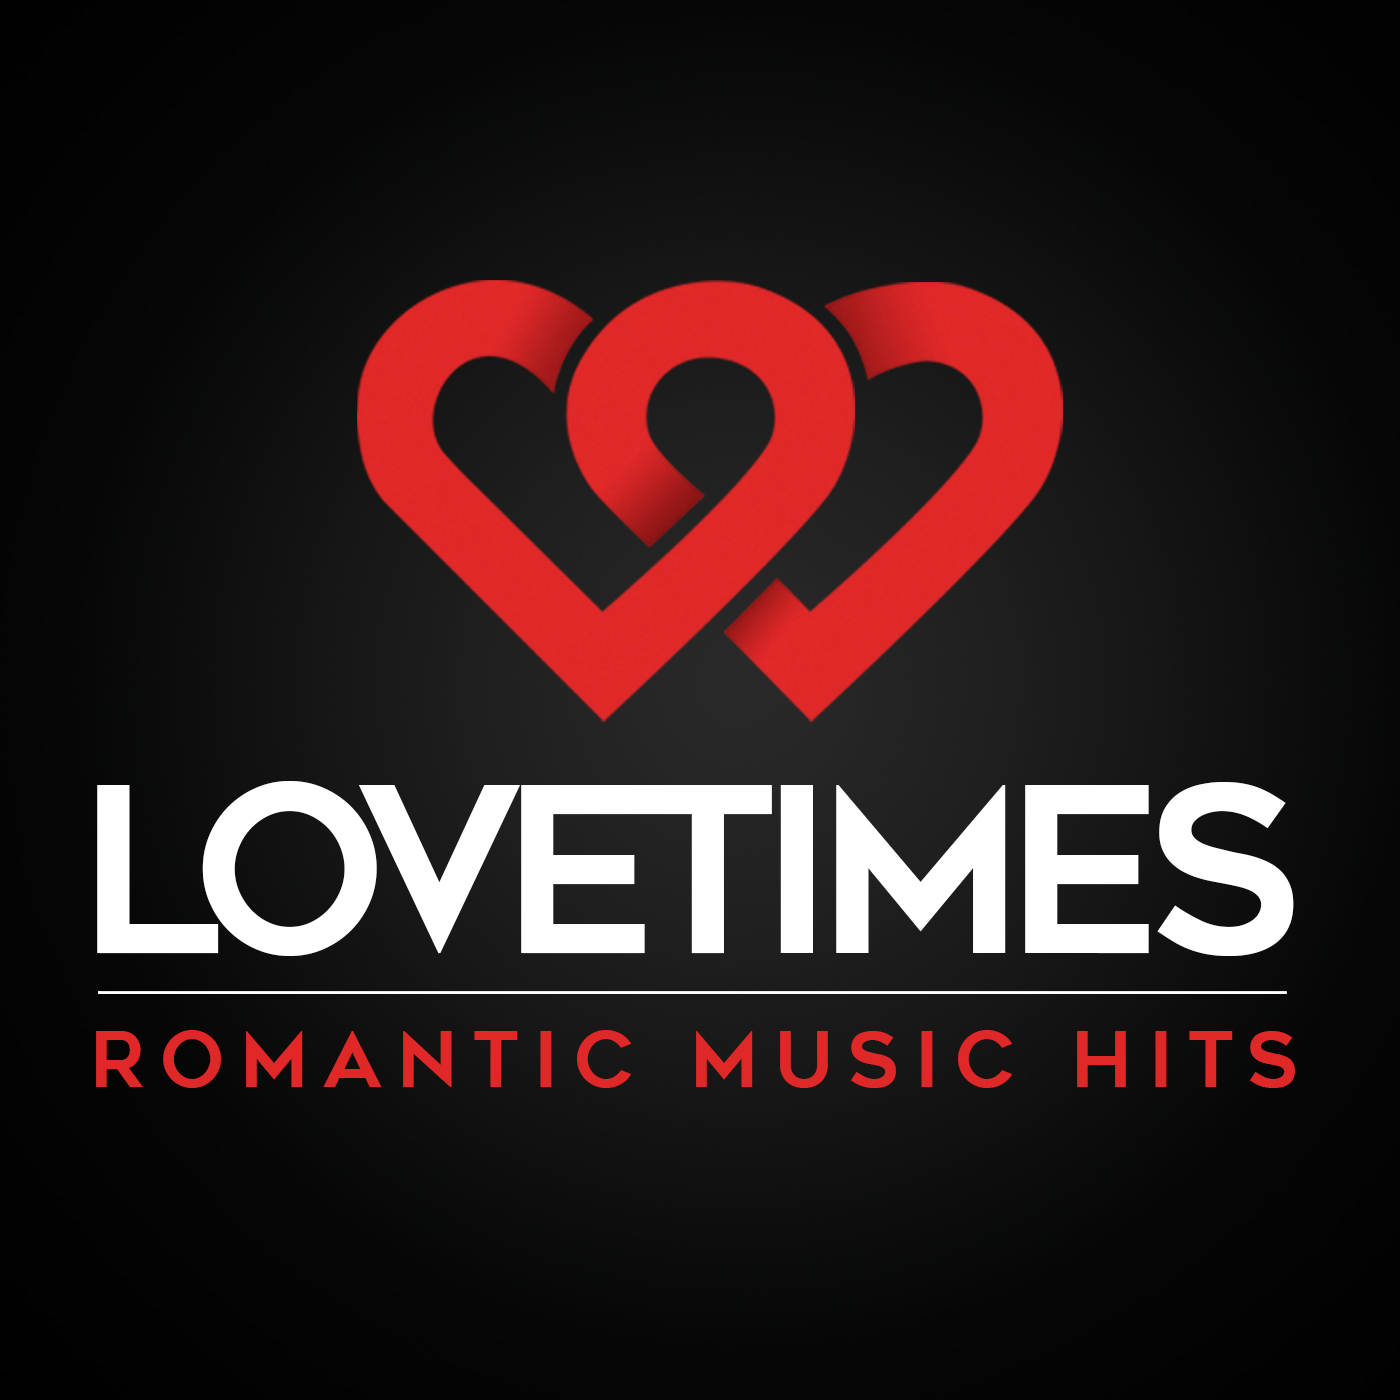 LOVETIMES | Romantic Music Hits (32 AAC)